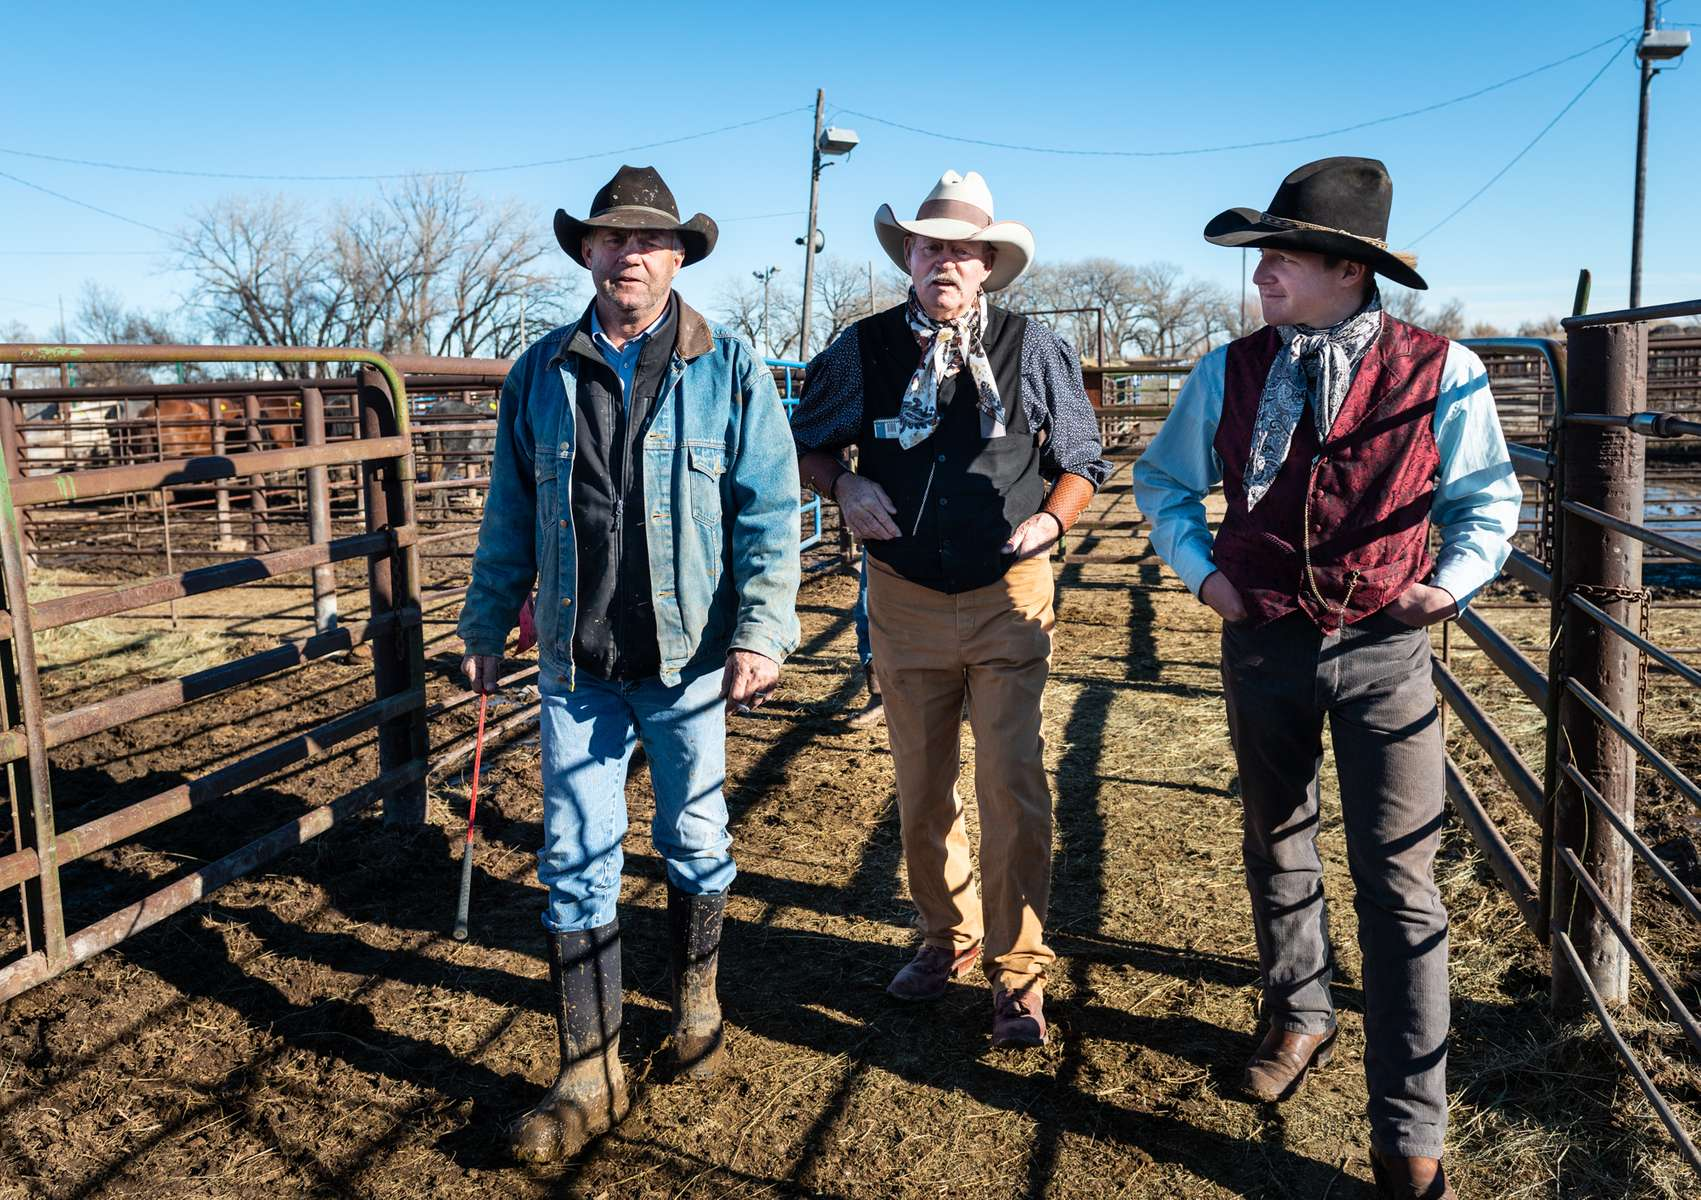 From Left, Rick Toczek,Ray Stokes, and Justin Manning walk through the pens at the Gordon Livestock Market, Gordon Nebraska.